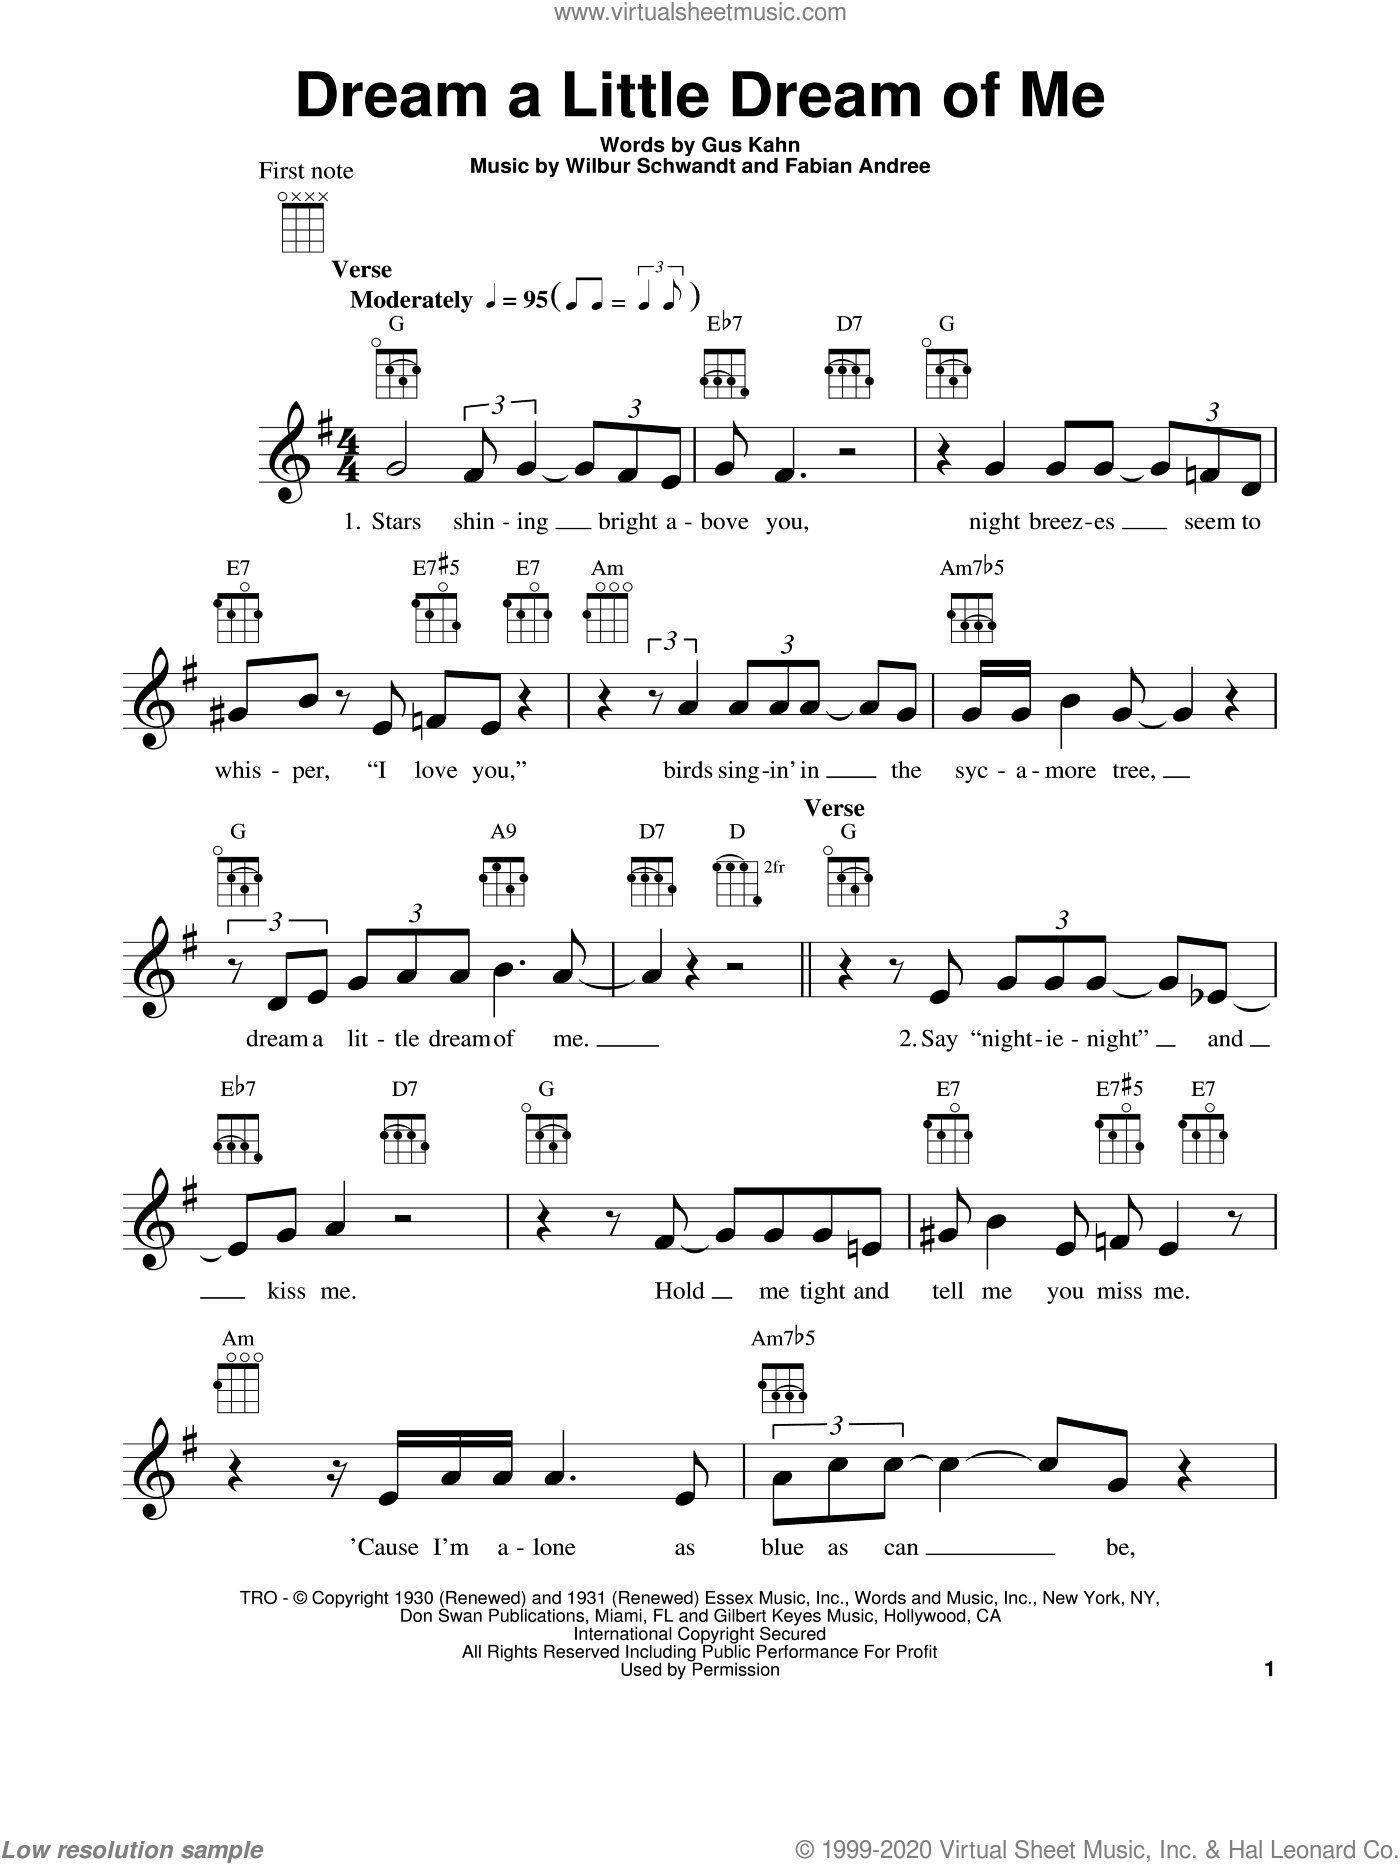 Dream A Little Dream Of Me sheet music for ukulele by The Mamas & The Papas, Gus Kahn and Wilbur Schwandt. Score Image Preview.